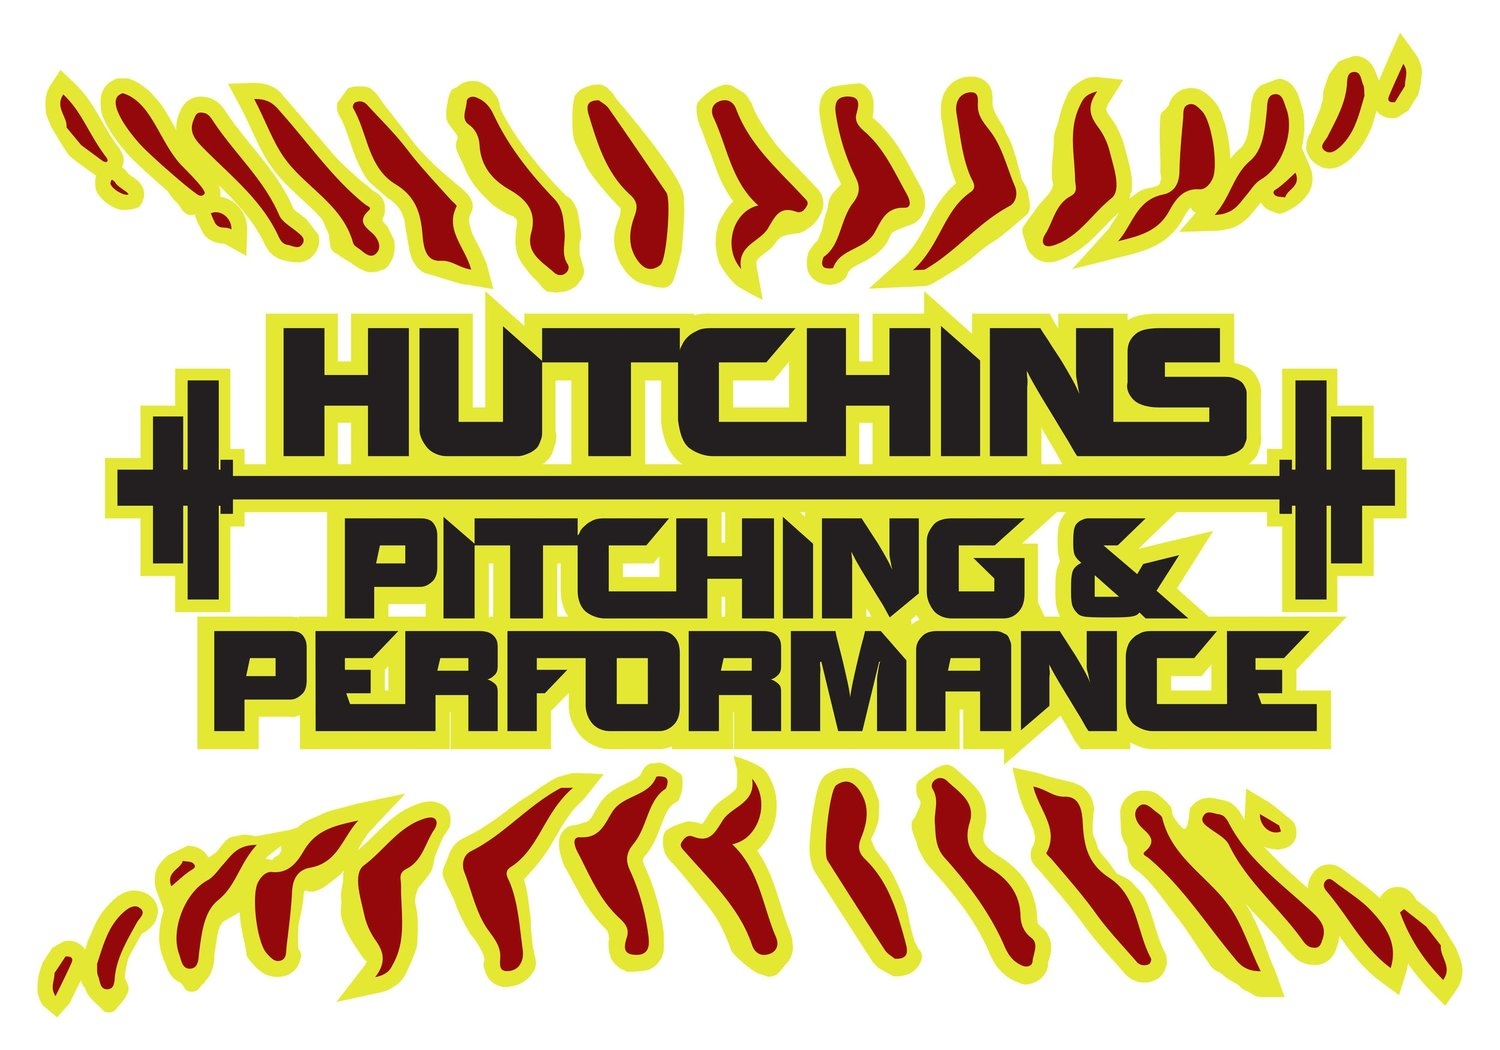 Hutchins Pitching & Performance